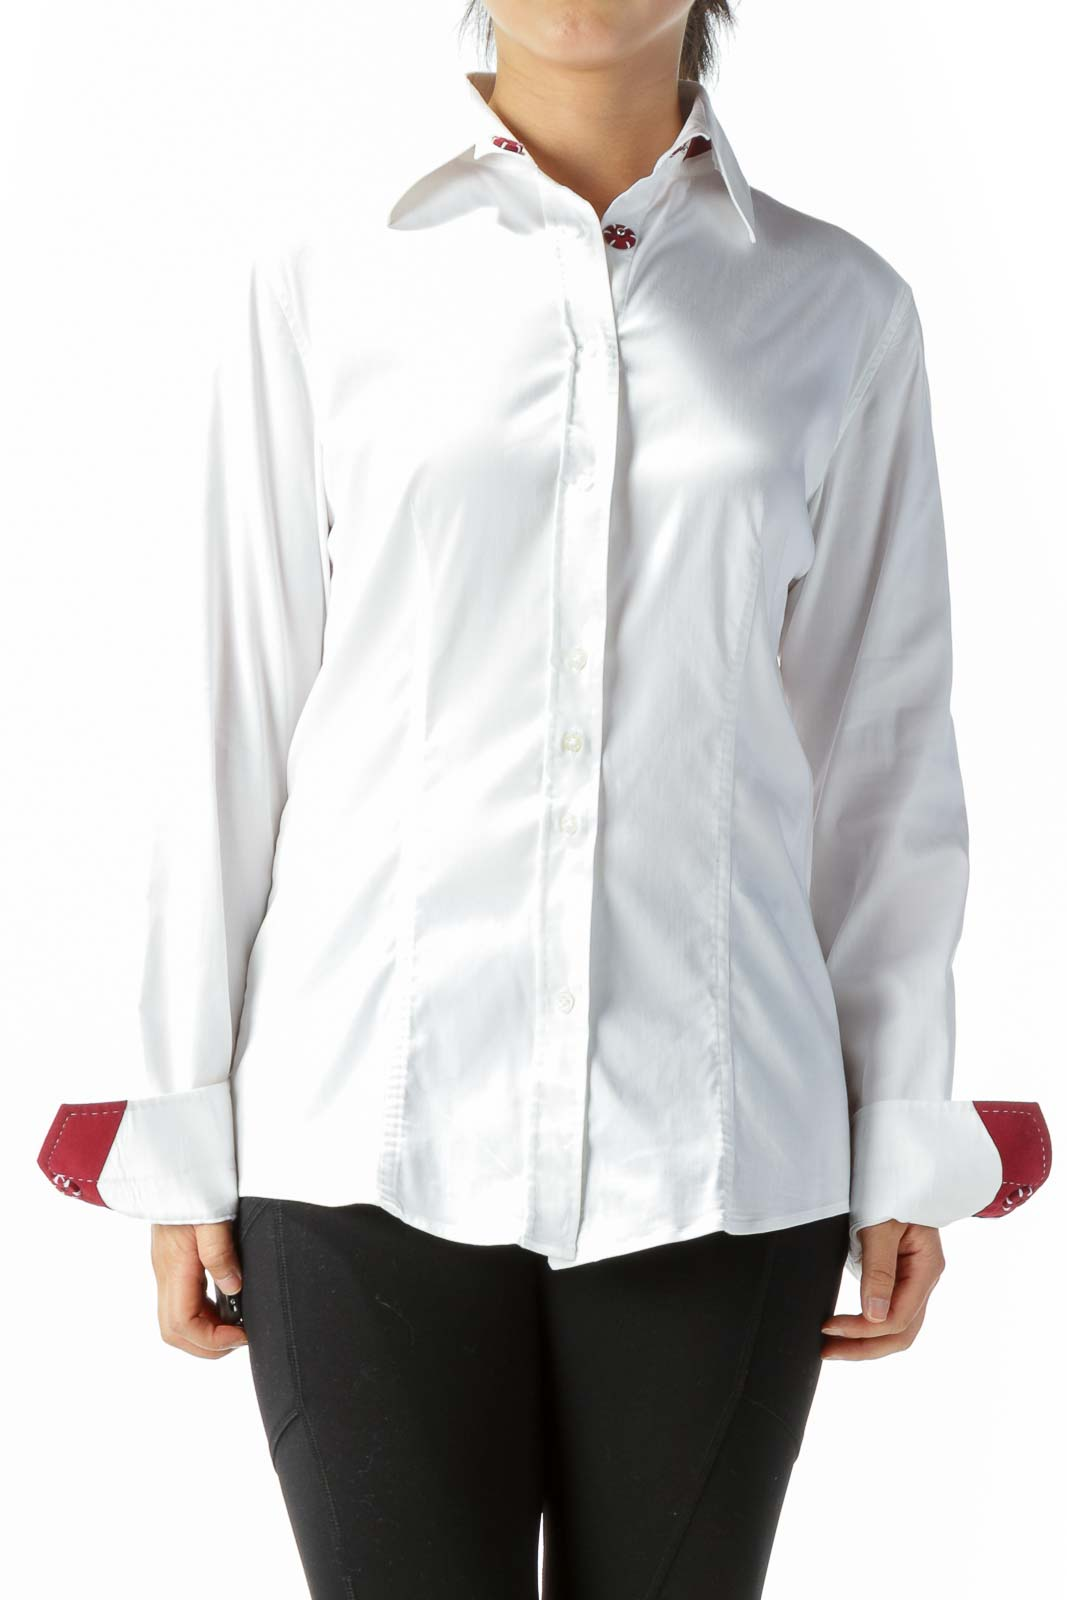 White Burgundy Red Accents Shirt